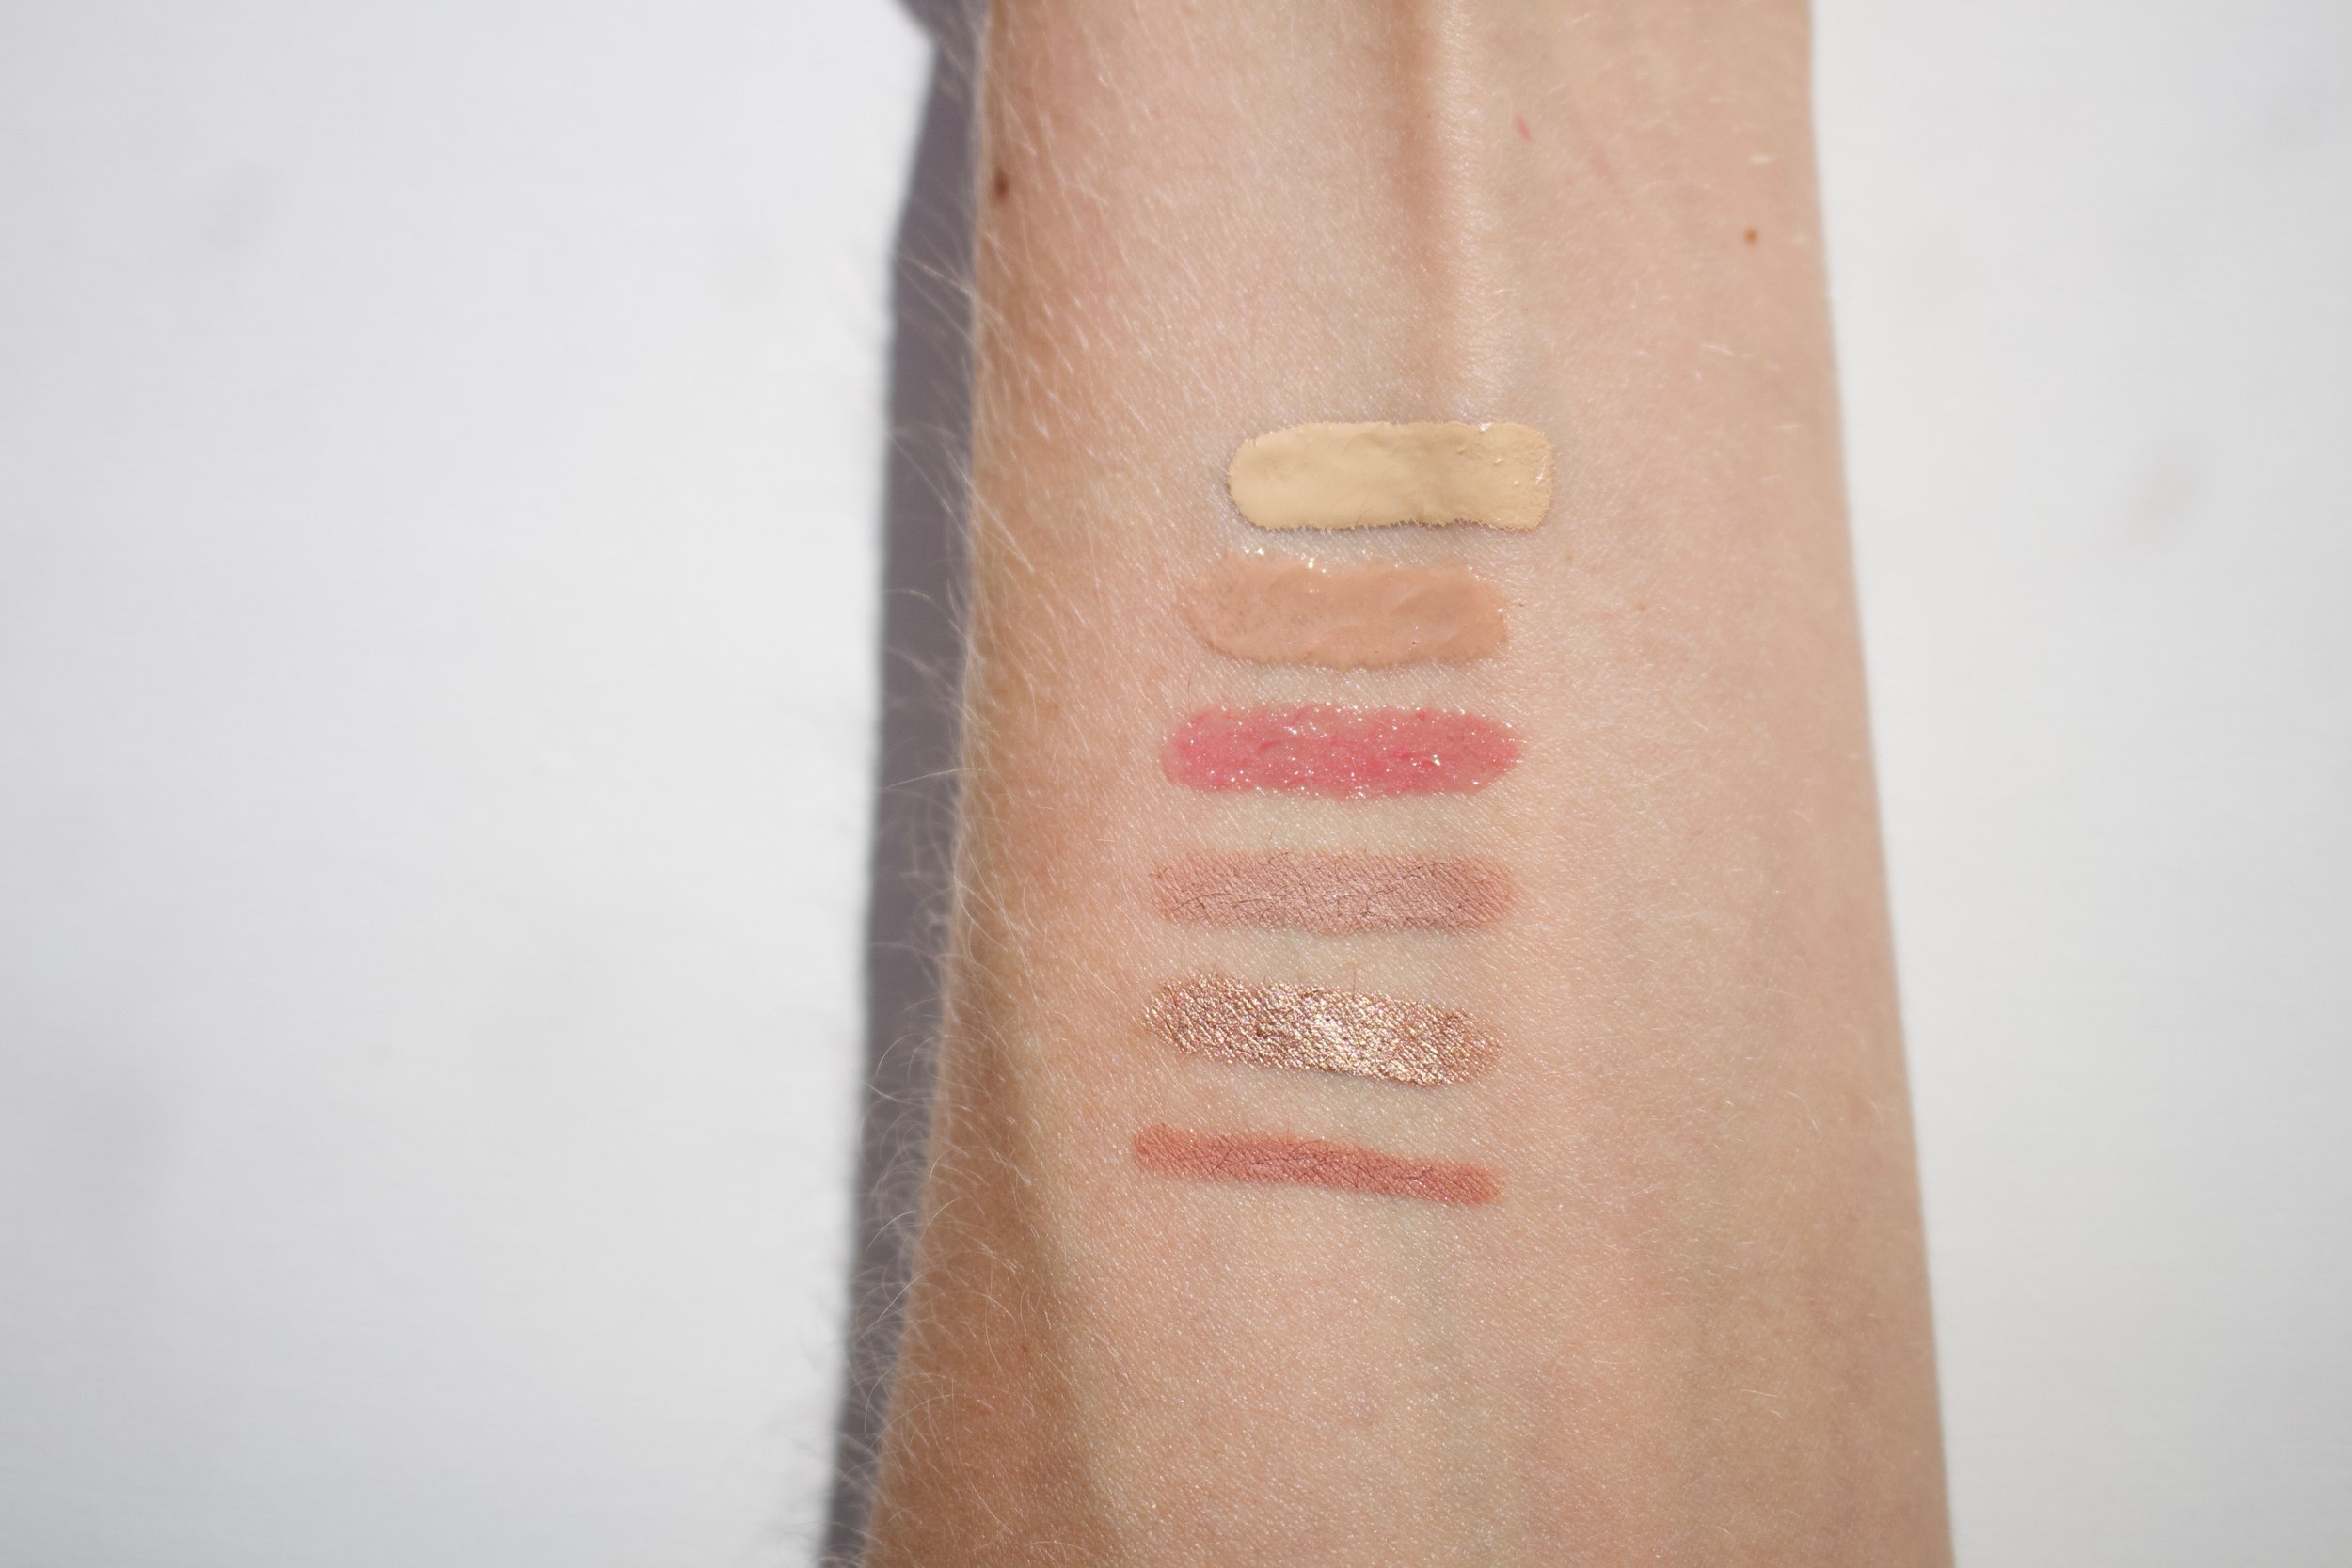 Swatches from top to bottom (in direct sunlight): Great Skin Foundation in 75, Superglazy Moisture Lip Gloss In Neutral, Shine Up Lip Colour Balm in Pillowy Pink, Moisture- Lock Wondergel Lip Liner in Vanilla Nude, Wondercolor Longwear Cream Shadow Sticks in Pink Velvet and Little Star.